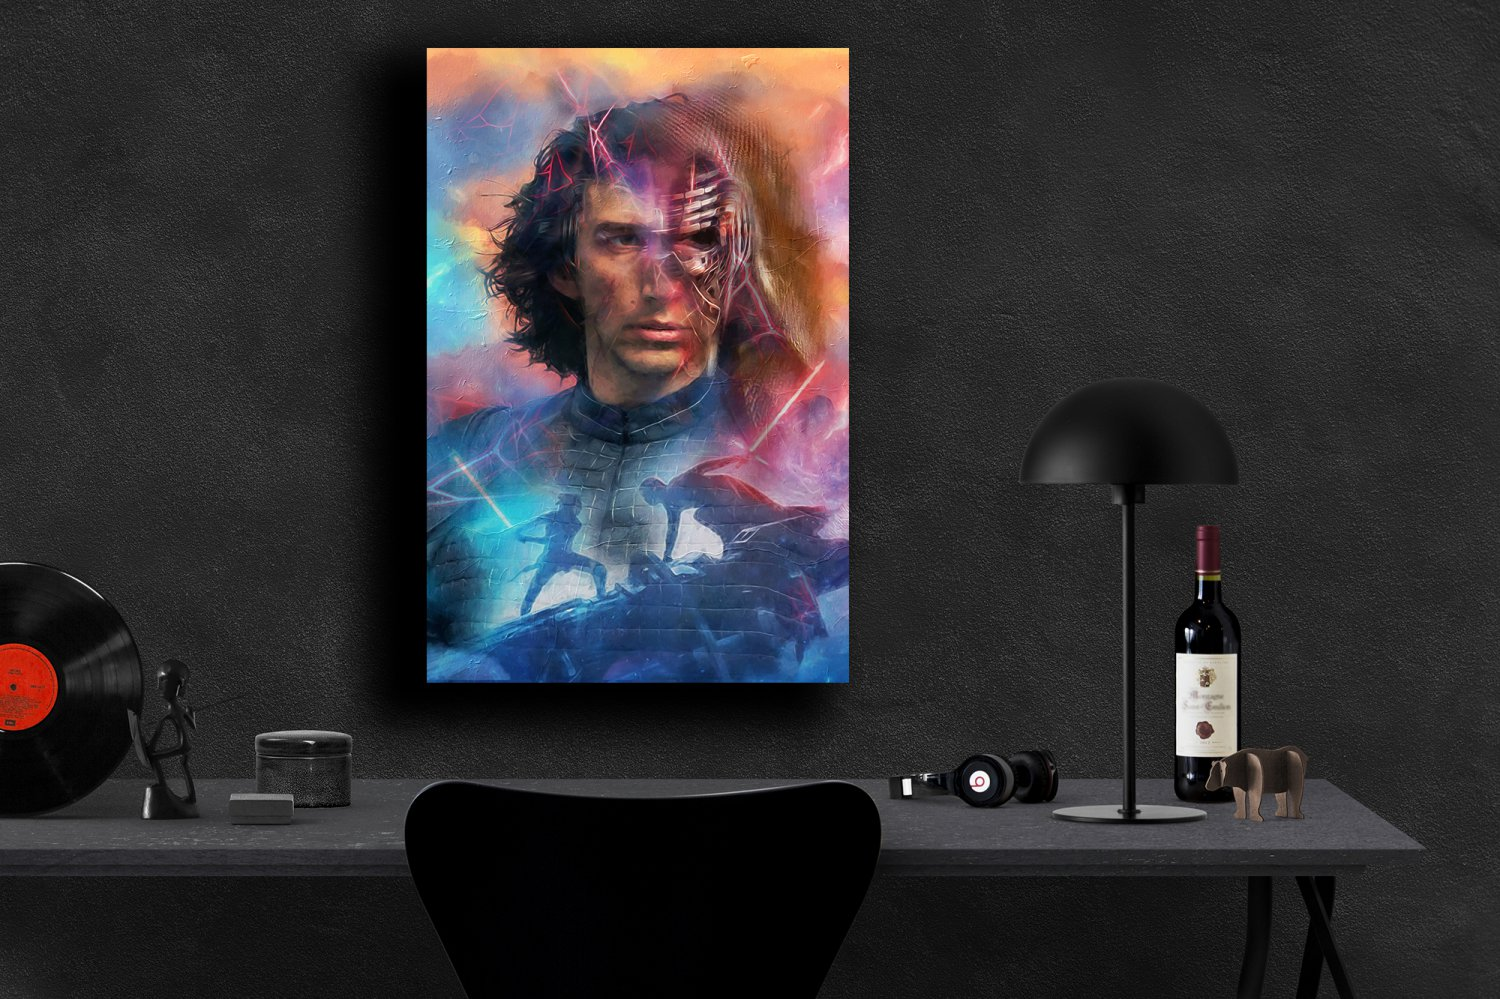 Star Wars The Rise of Skywalker, Rey, Kylo Ren, Daisy Ridley, Adam Driver  8x12 inches Photo Paper